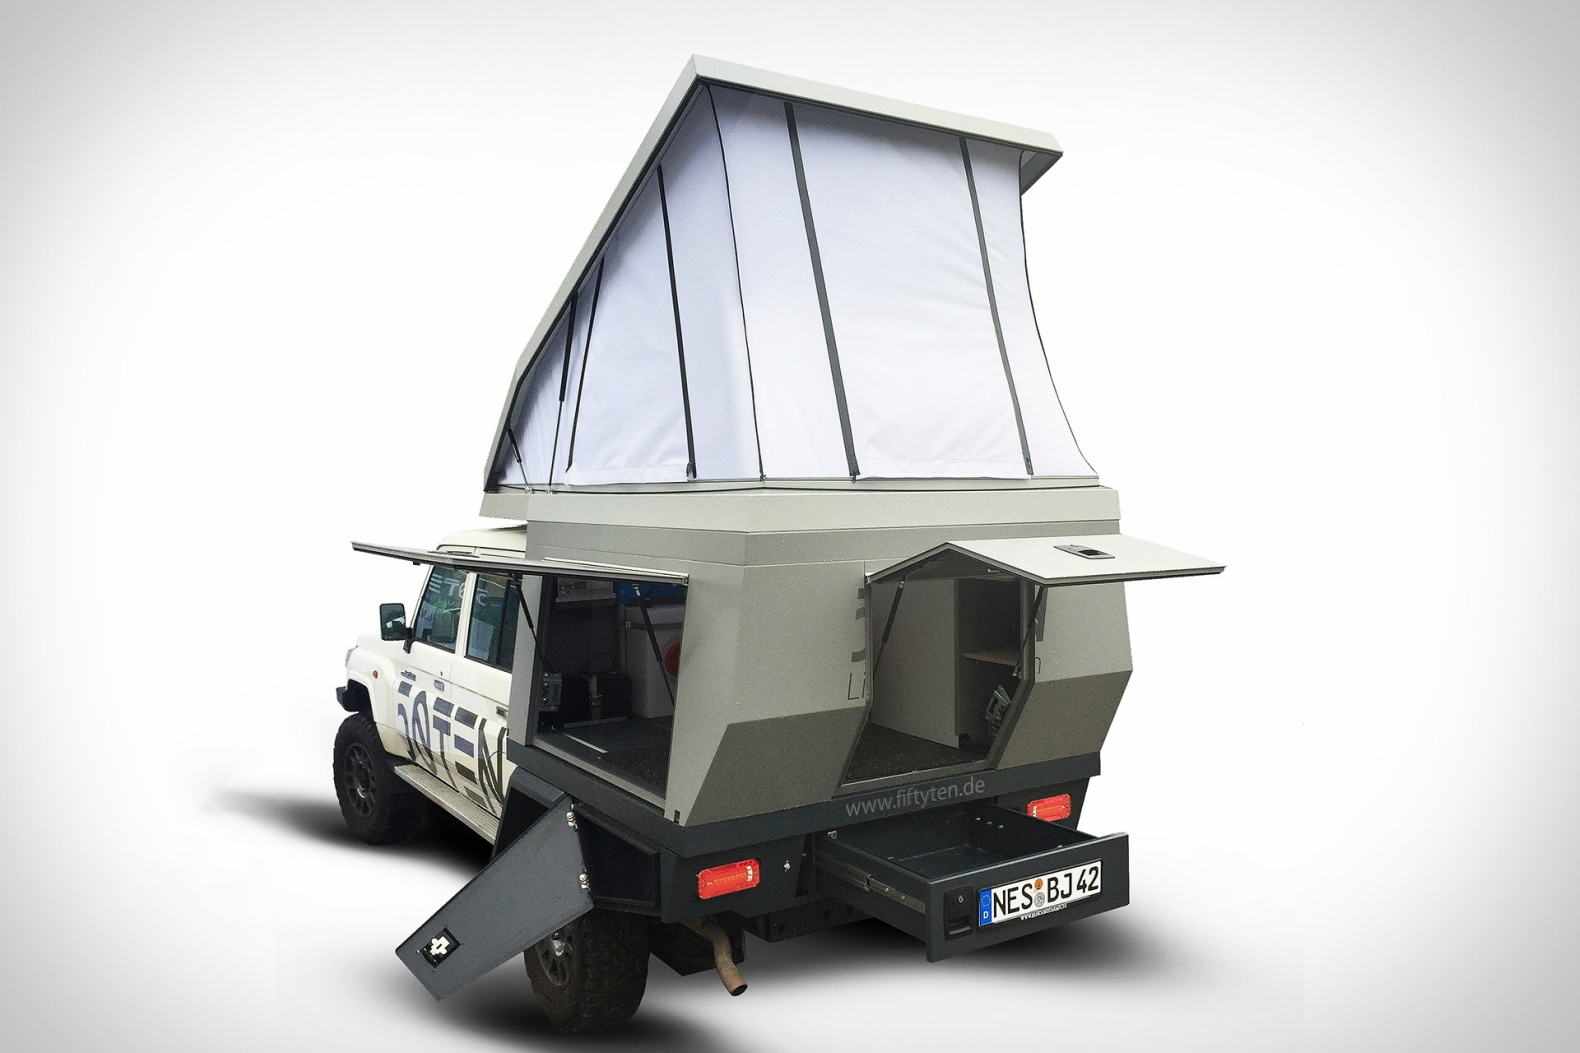 This pop-up camper transforms any truck into a tiny mobile home in seconds